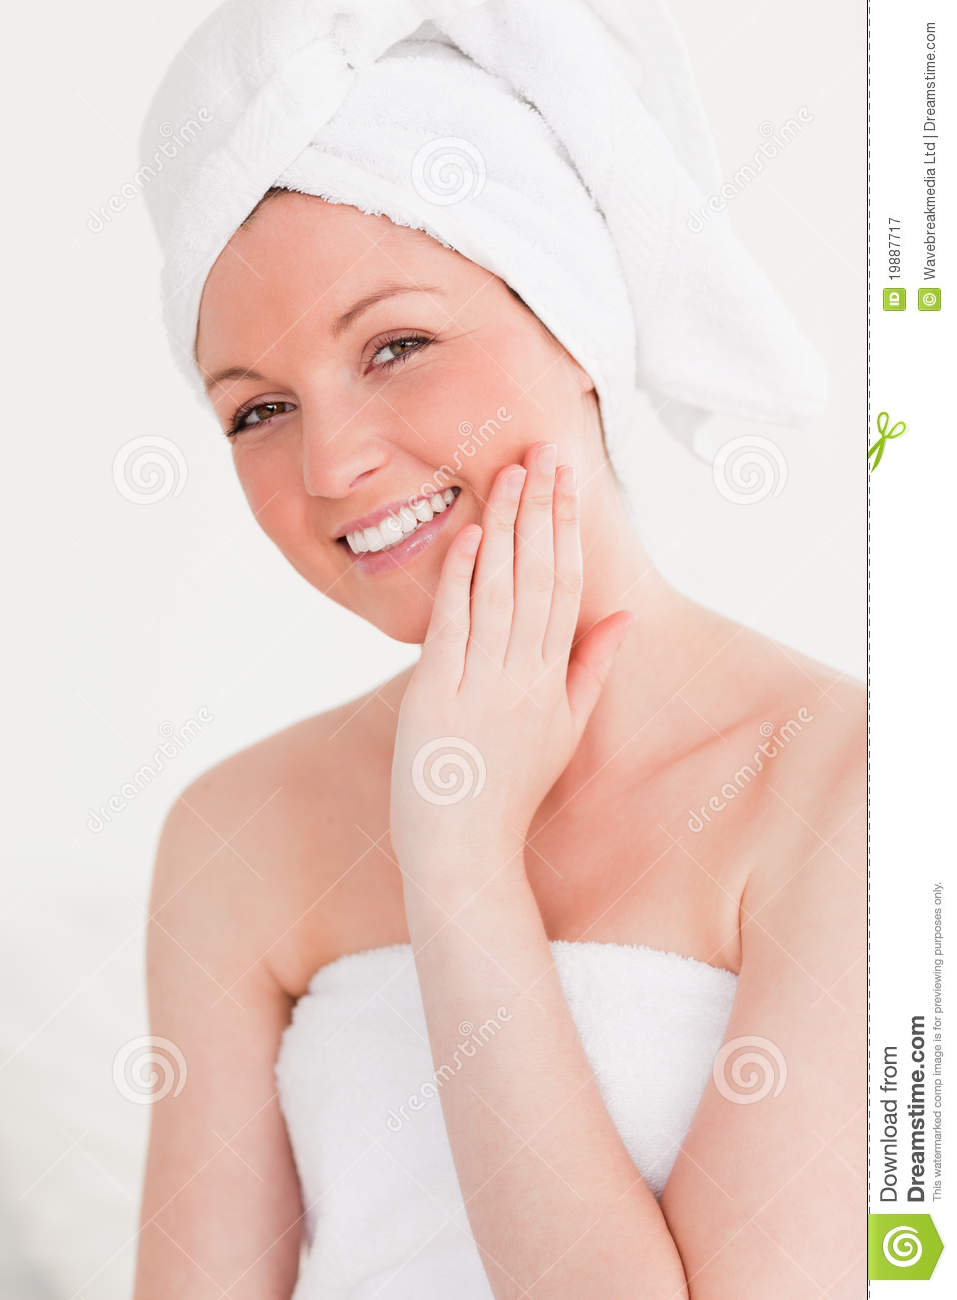 Good Looking Young Woman Wearing Towel Royalty Free Stock ...